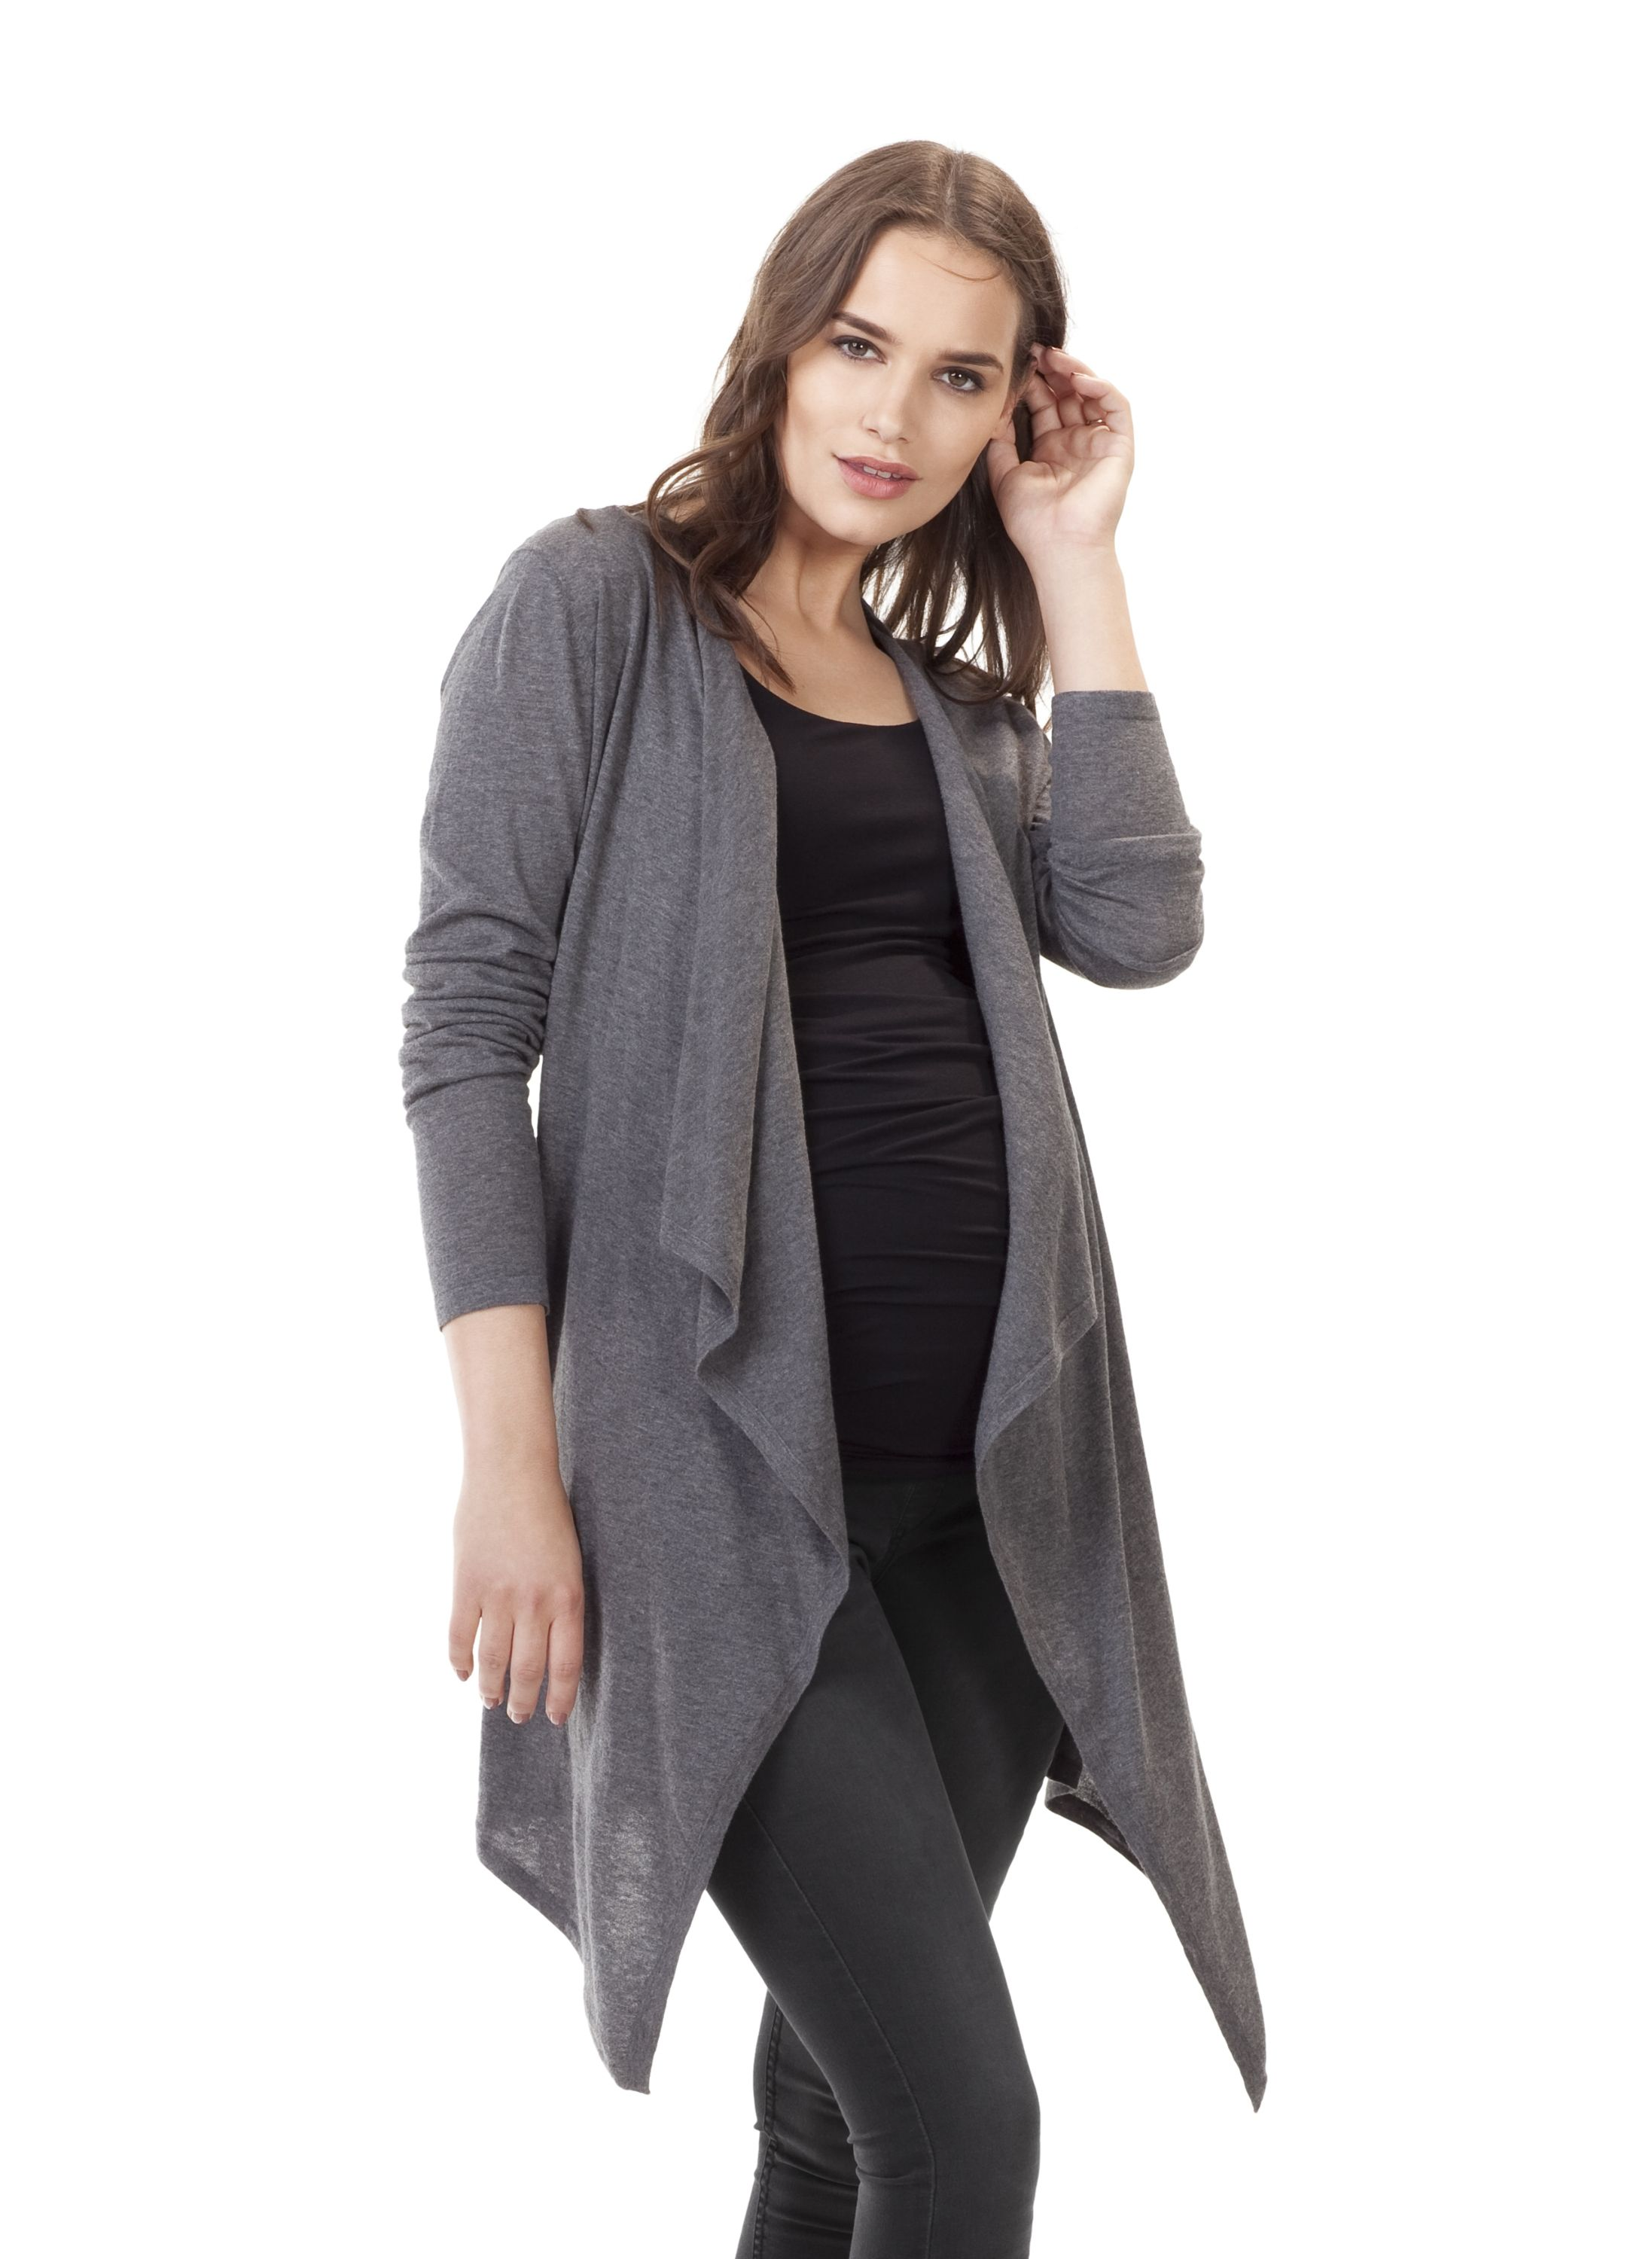 Harris maternity cardigan in grey isabella oliver uk 89 harris maternity cardigan in grey isabella oliver uk 89 ombrellifo Image collections